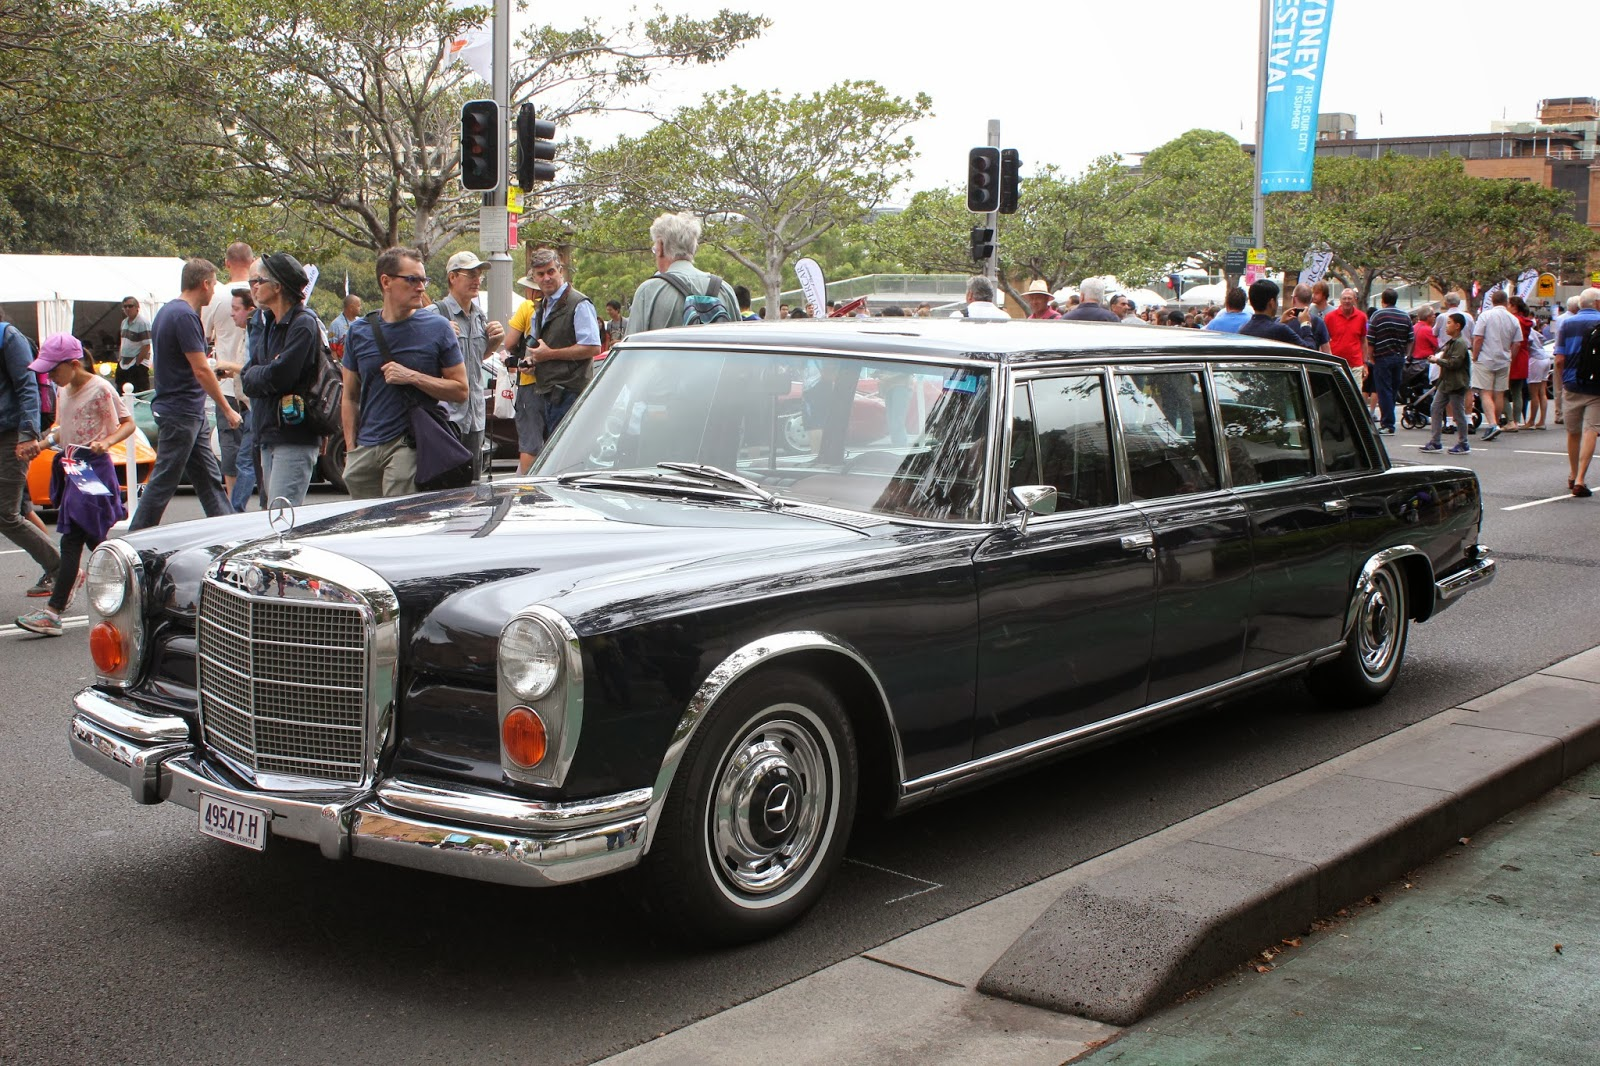 aussie old parked cars 1968 mercedes benz w100 600 pullman. Black Bedroom Furniture Sets. Home Design Ideas